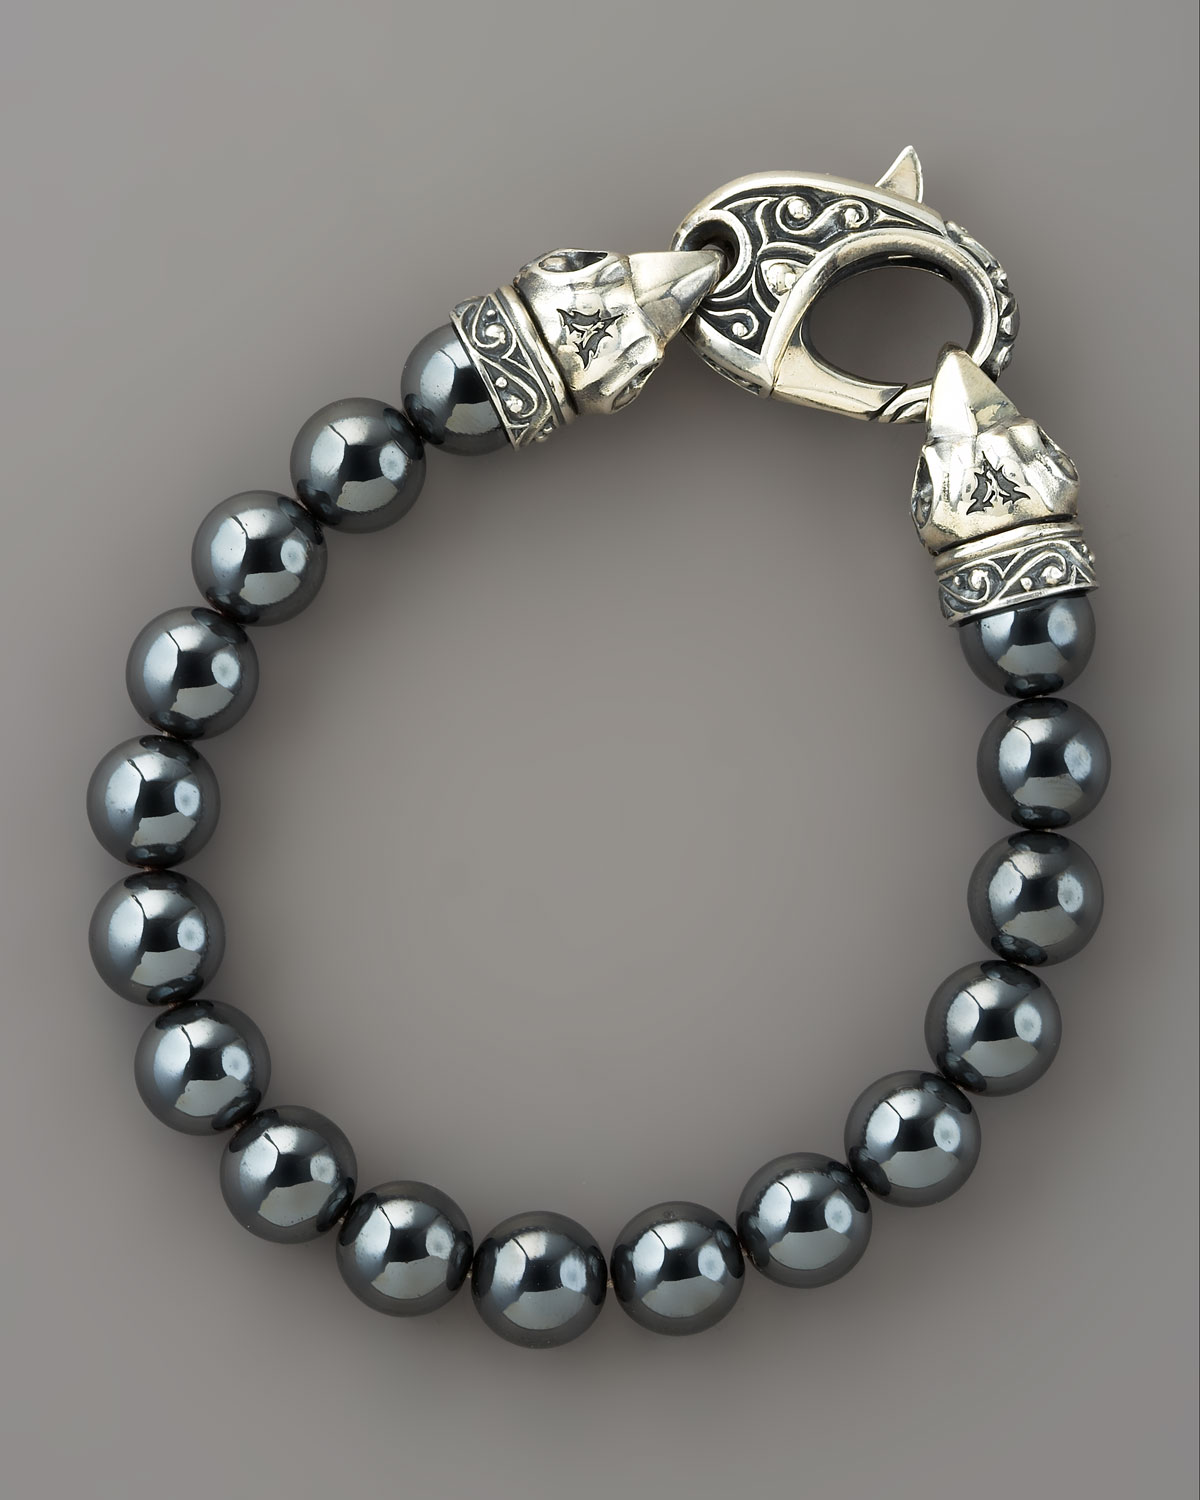 bead men stephen hematite lyst webster product silver jewelry blue bracelet gallery for in